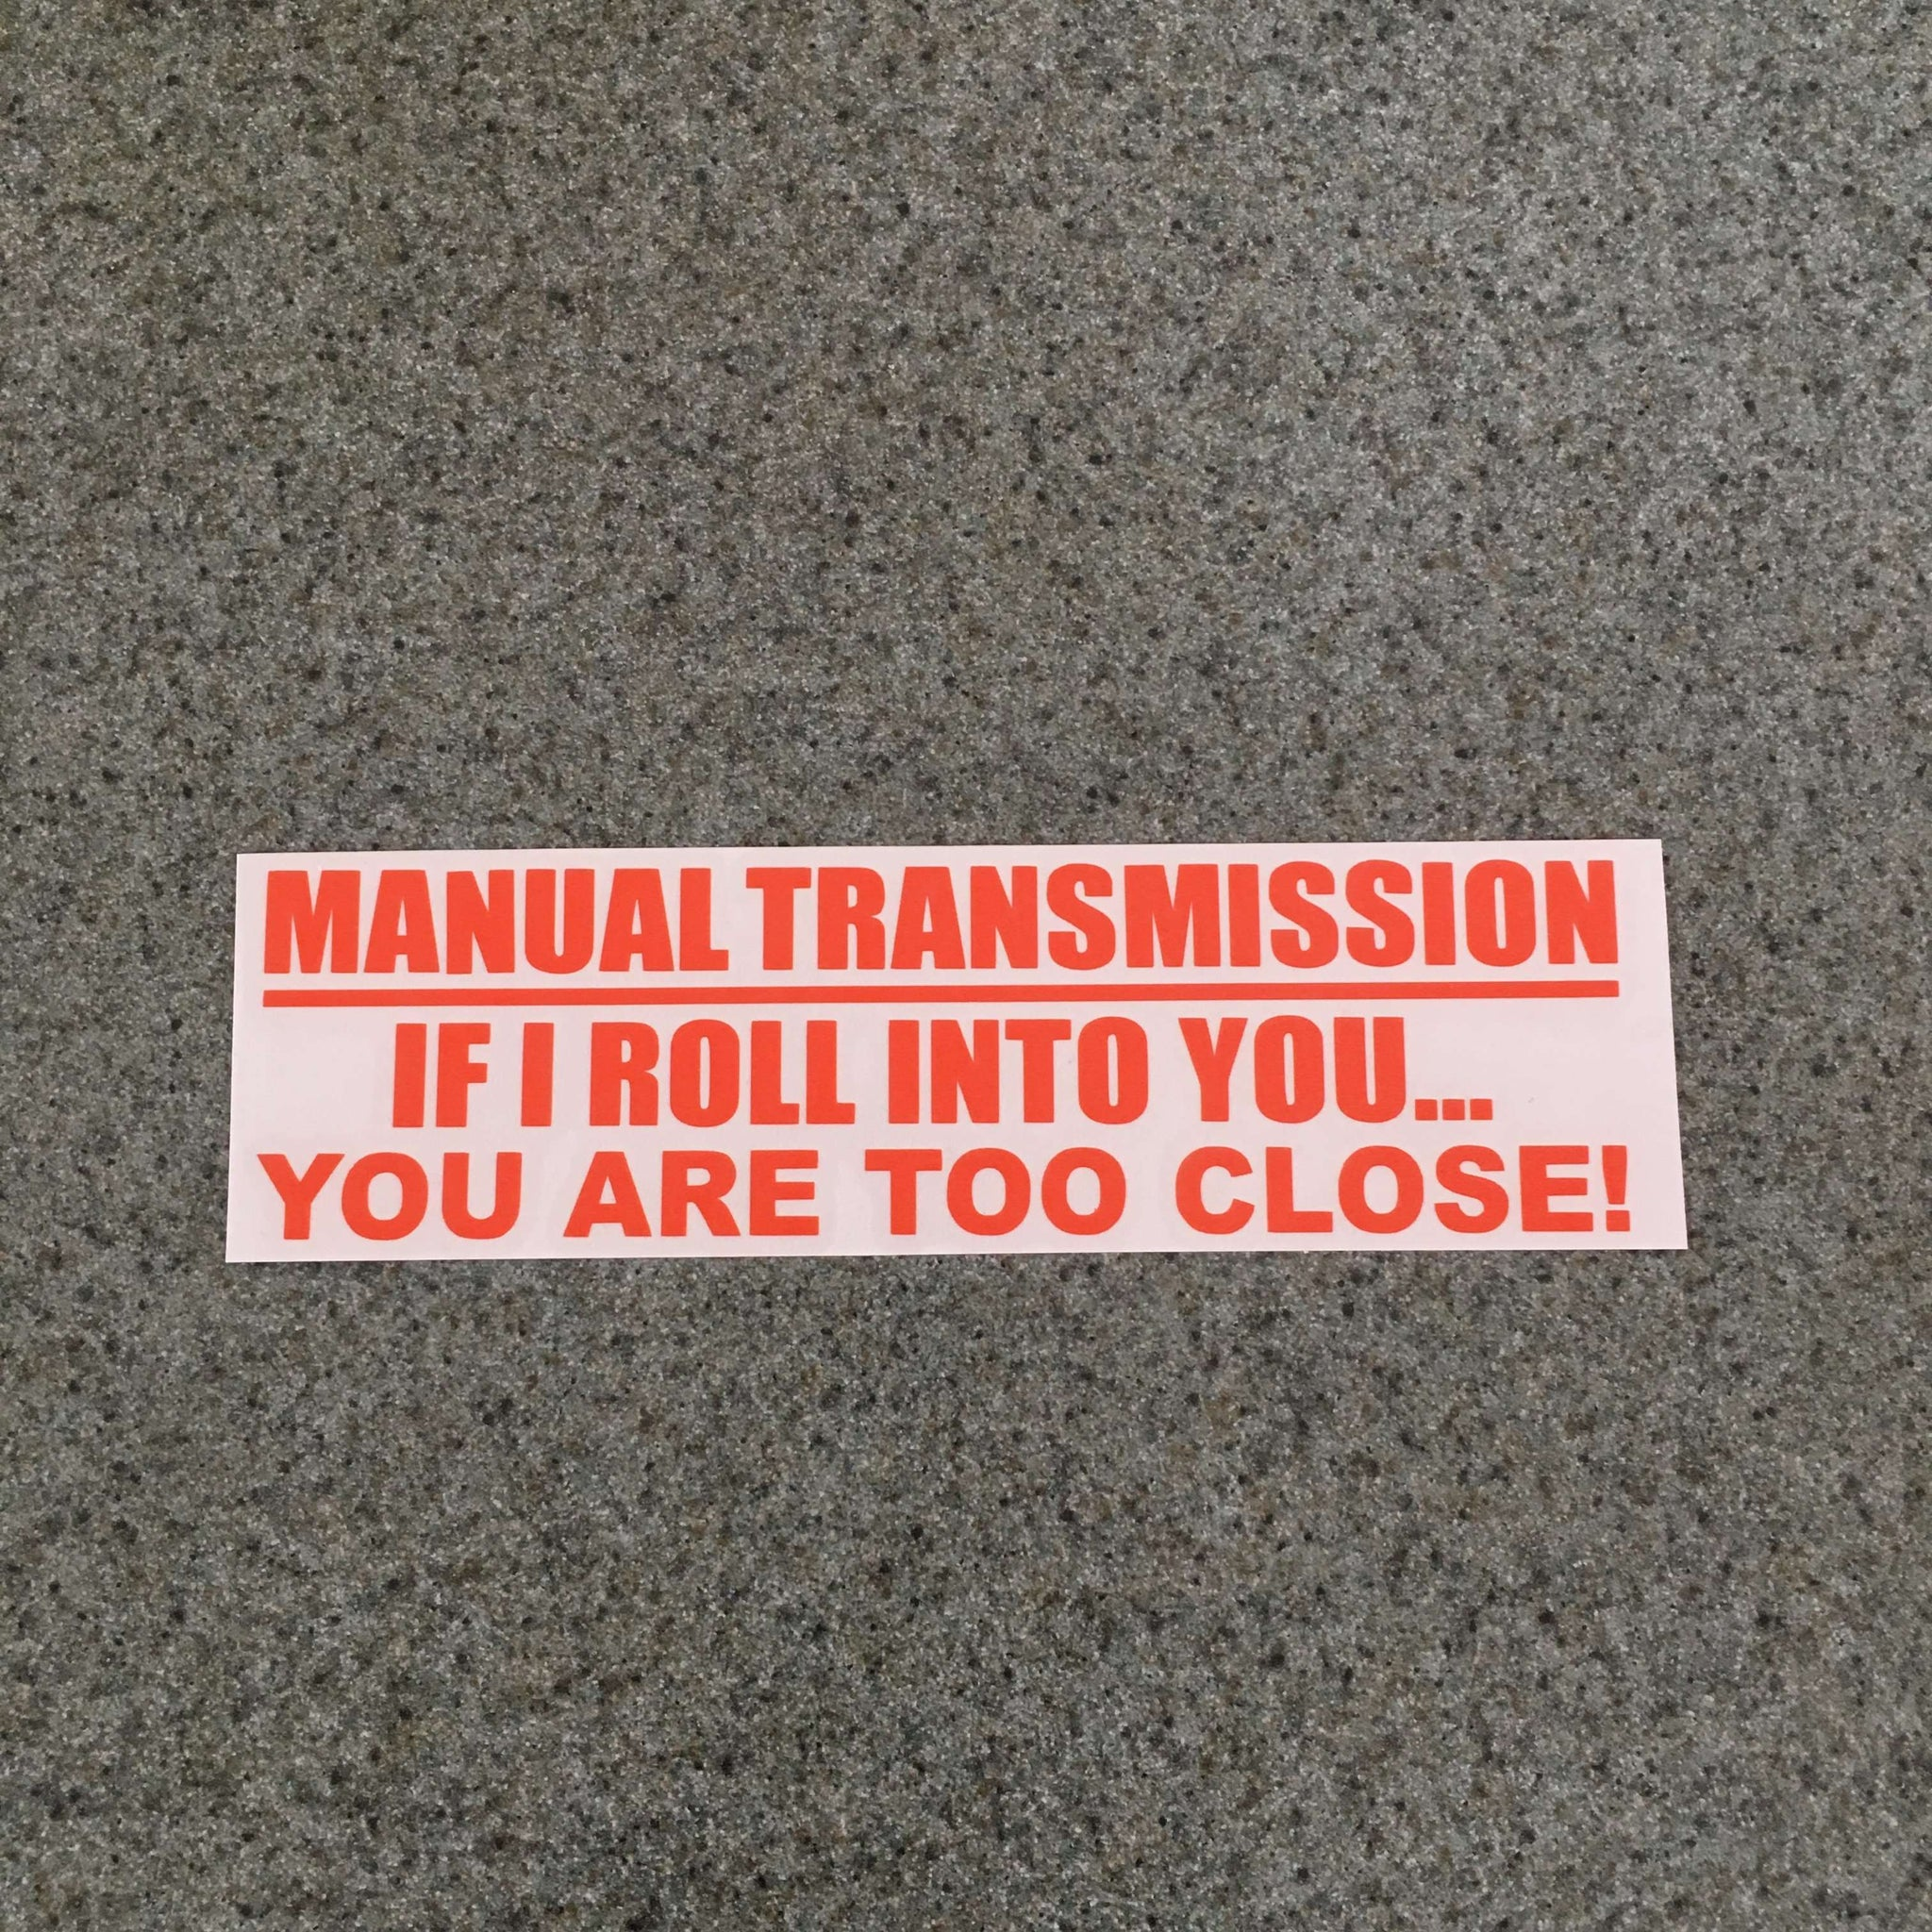 Manual Transmission If I Roll Into You You Are Too Close Sticker